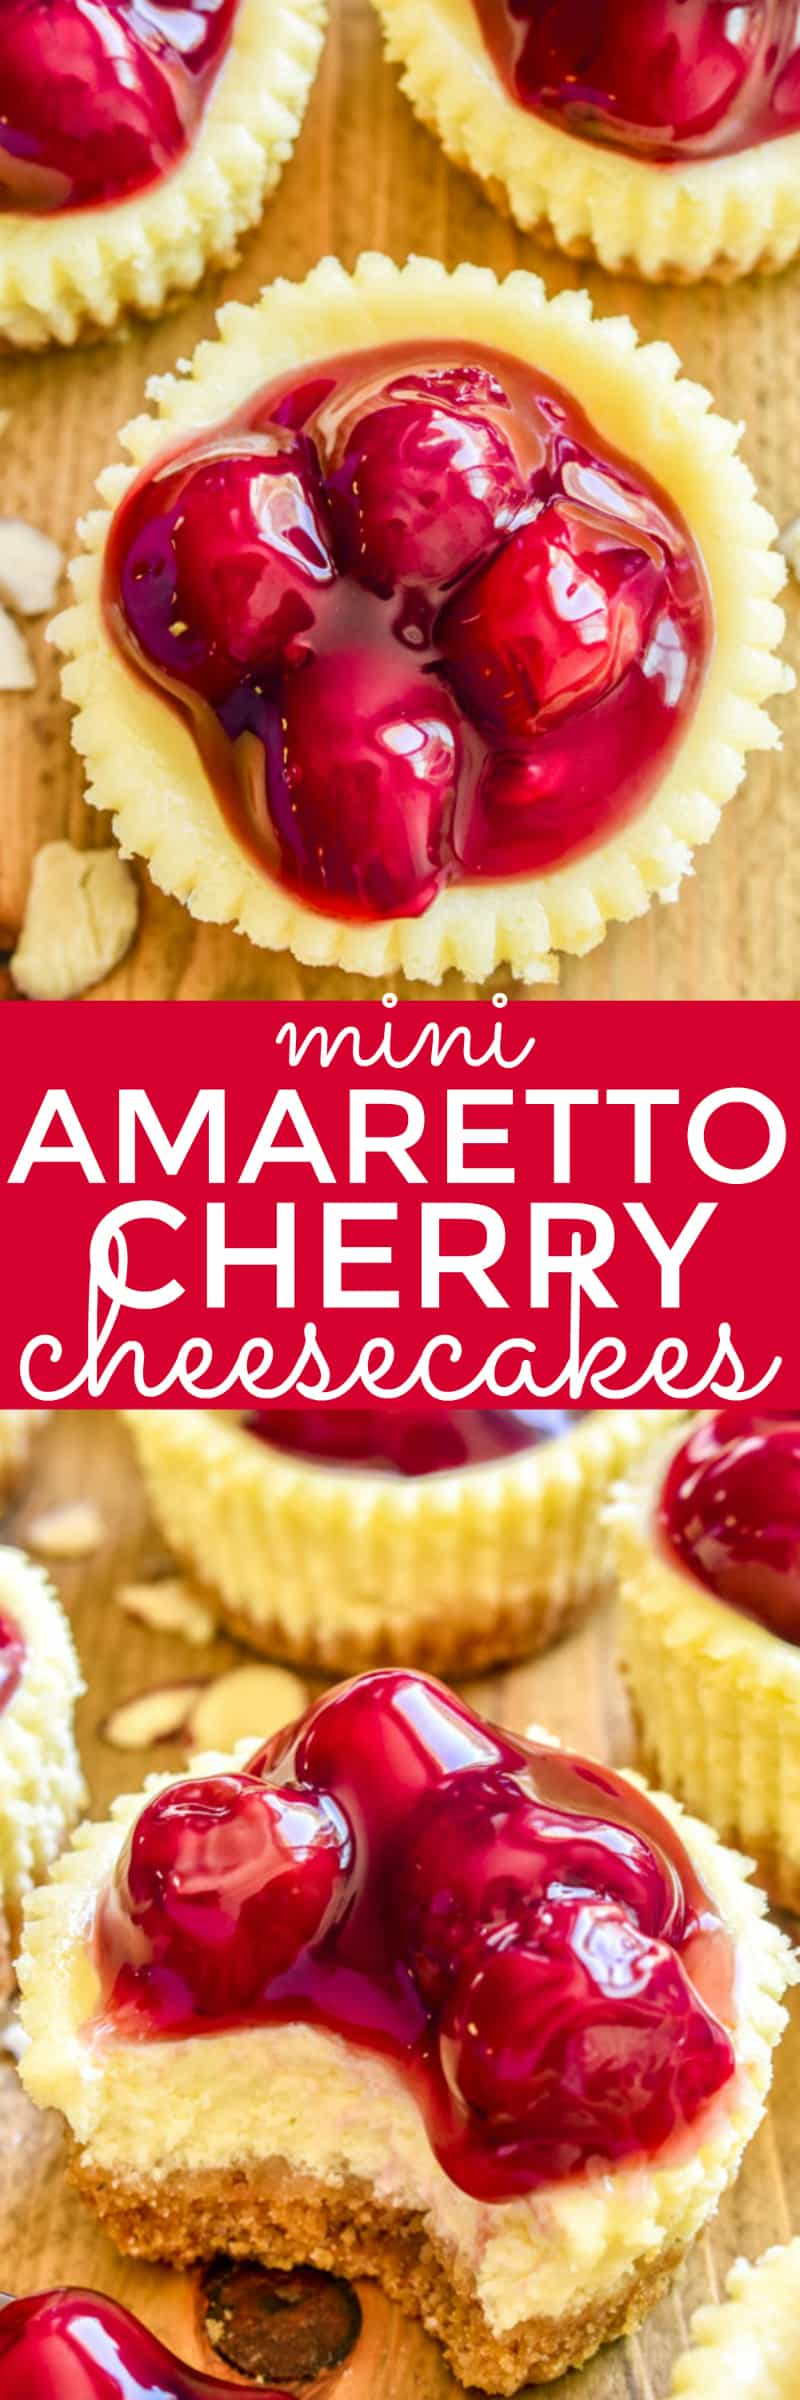 If you love cheesecake, you'll adore these Mini Amaretto Cherry Cheesecakes! The perfect easy dessert for holidays, parties, baby showers, or any special occasion.